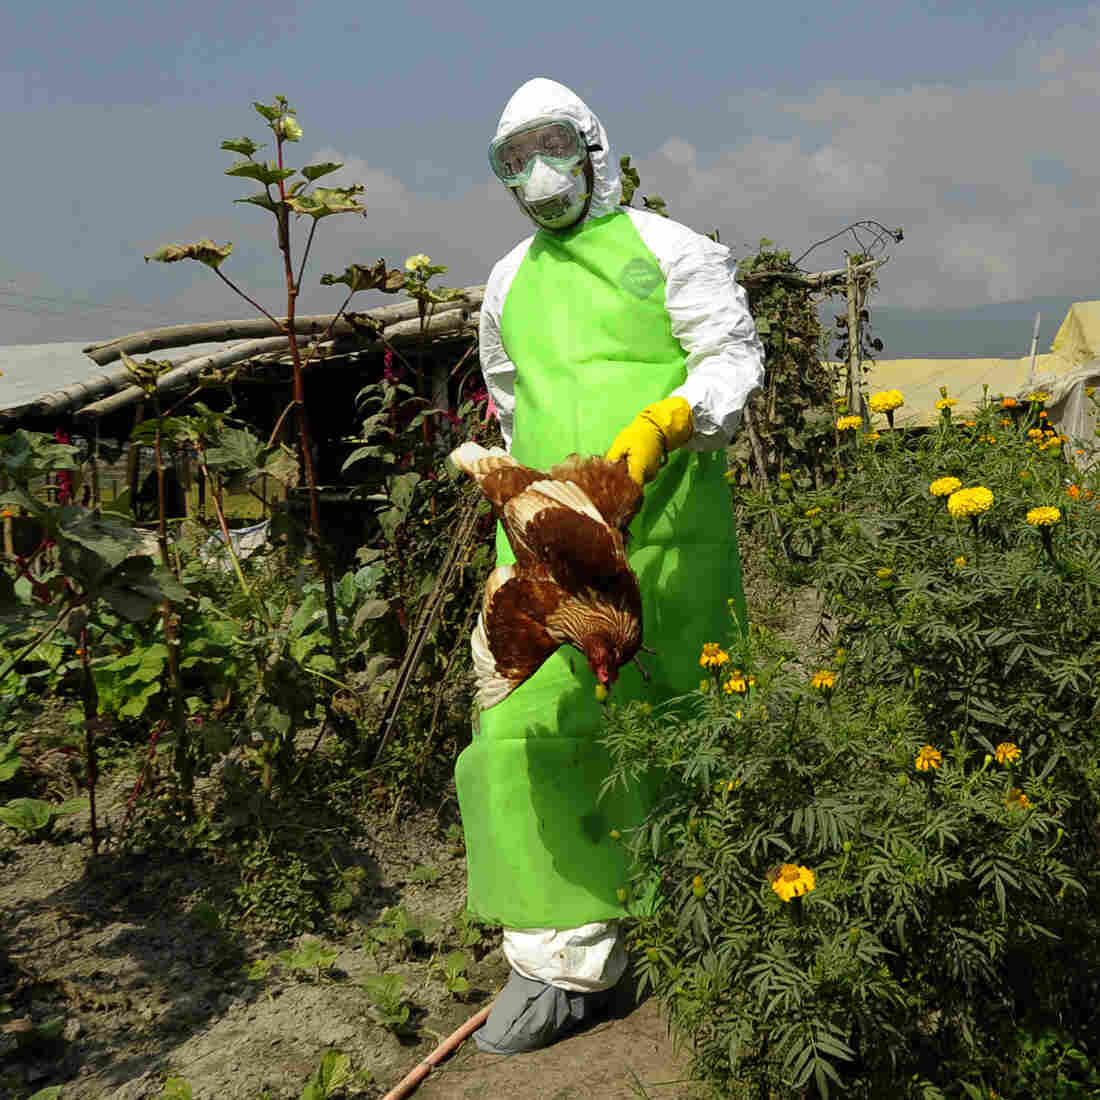 A prefectural officer carries a chicken on a poultry farm on Oct. 15 on the outskirts of Kathmandu, Nepal, where chickens suspected of being infected with bird flu were found.